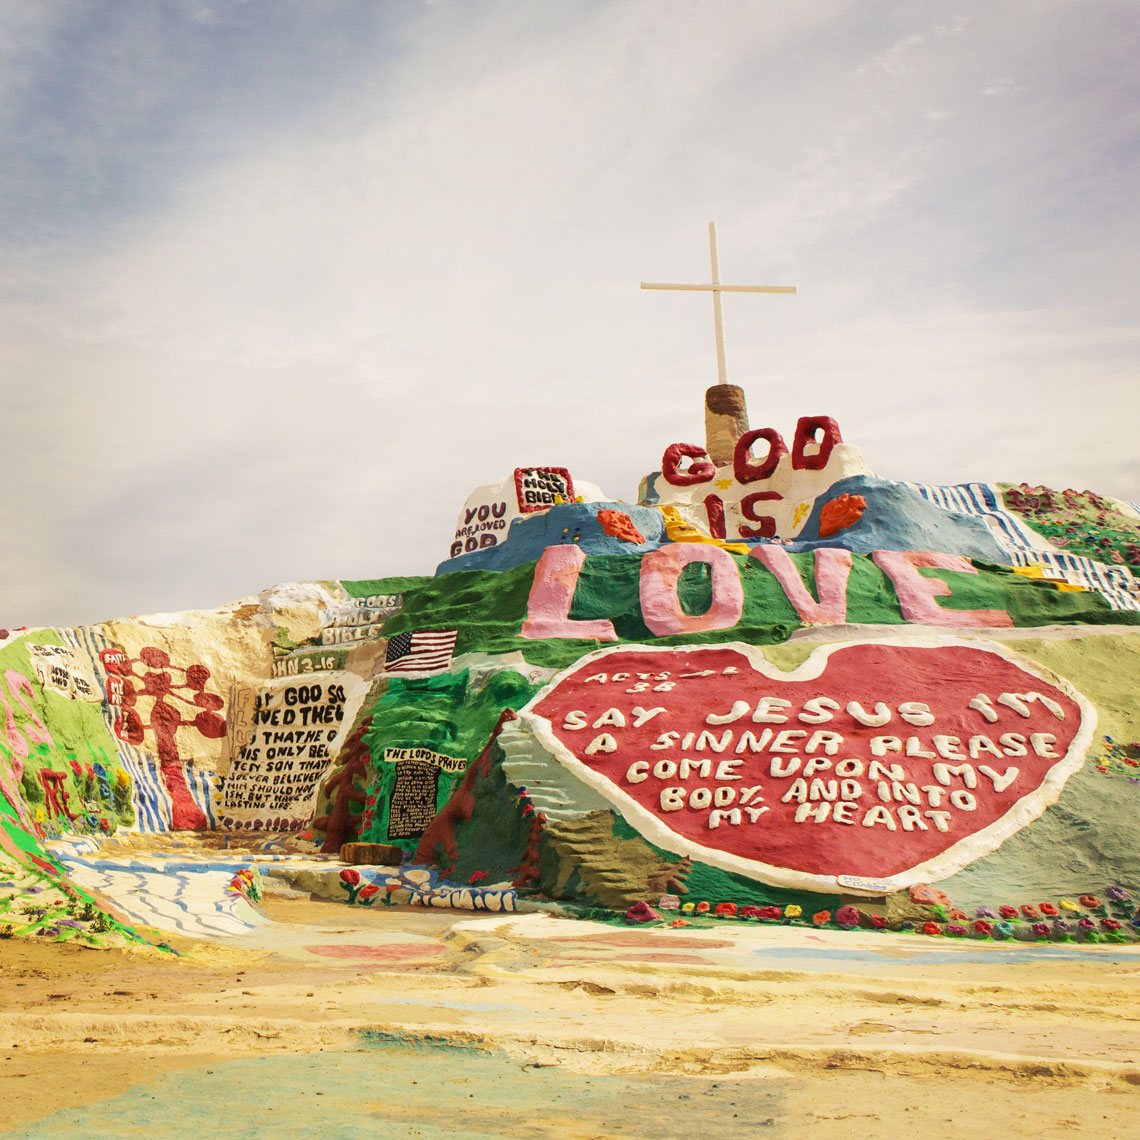 01_Desert_Kris_Davidson_National_Geographic_Salvation_Mountain